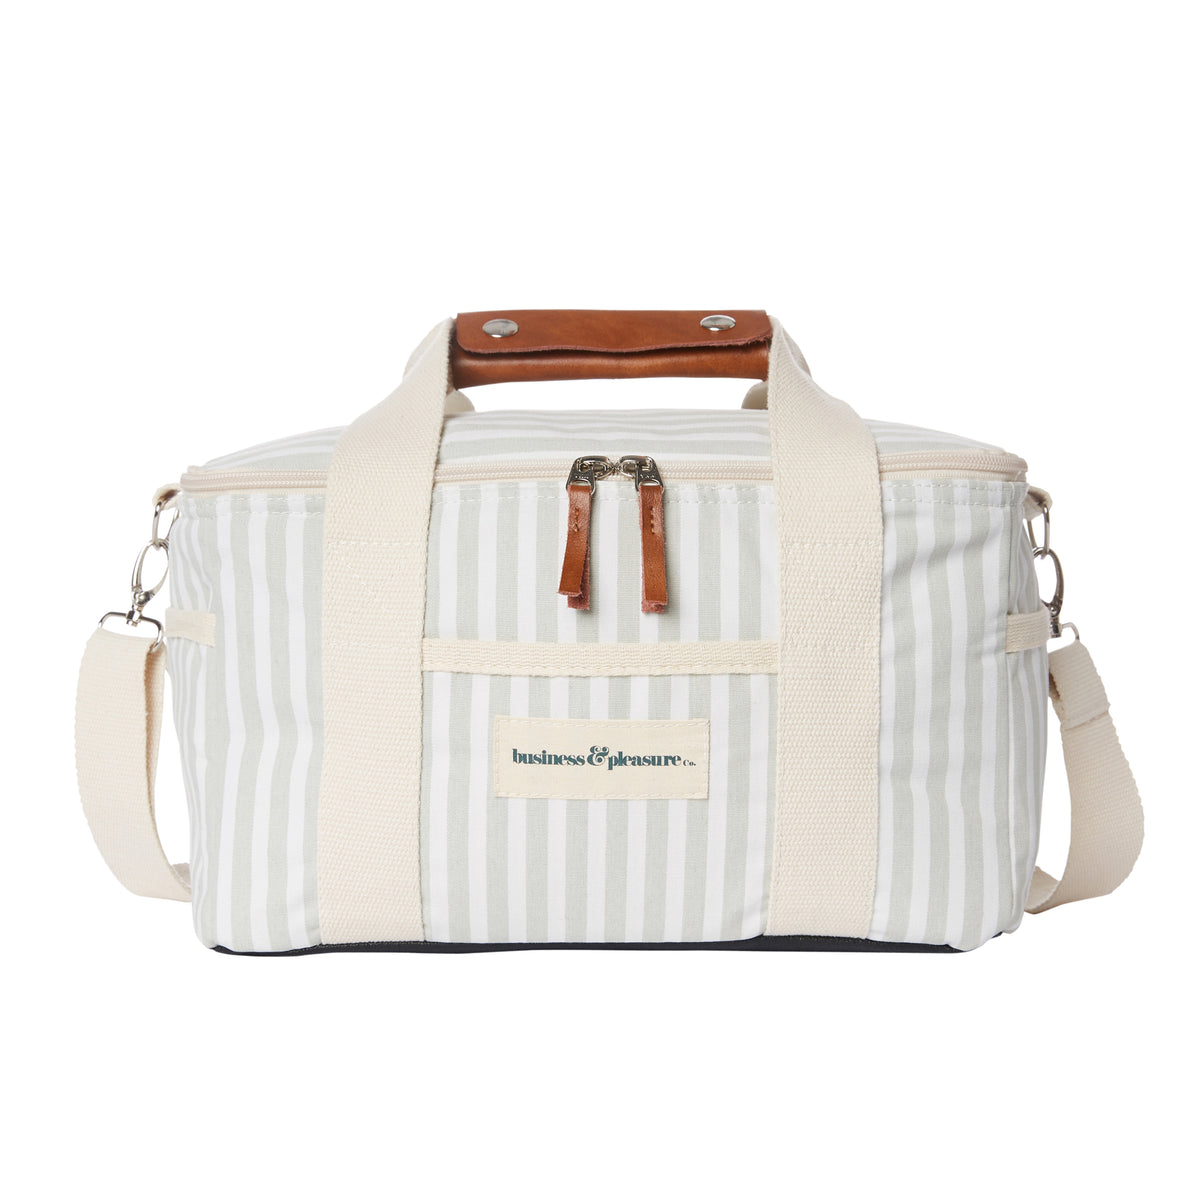 Lauren's Sage Stripe Premium Cooler Bag - Business & Pleasure Co